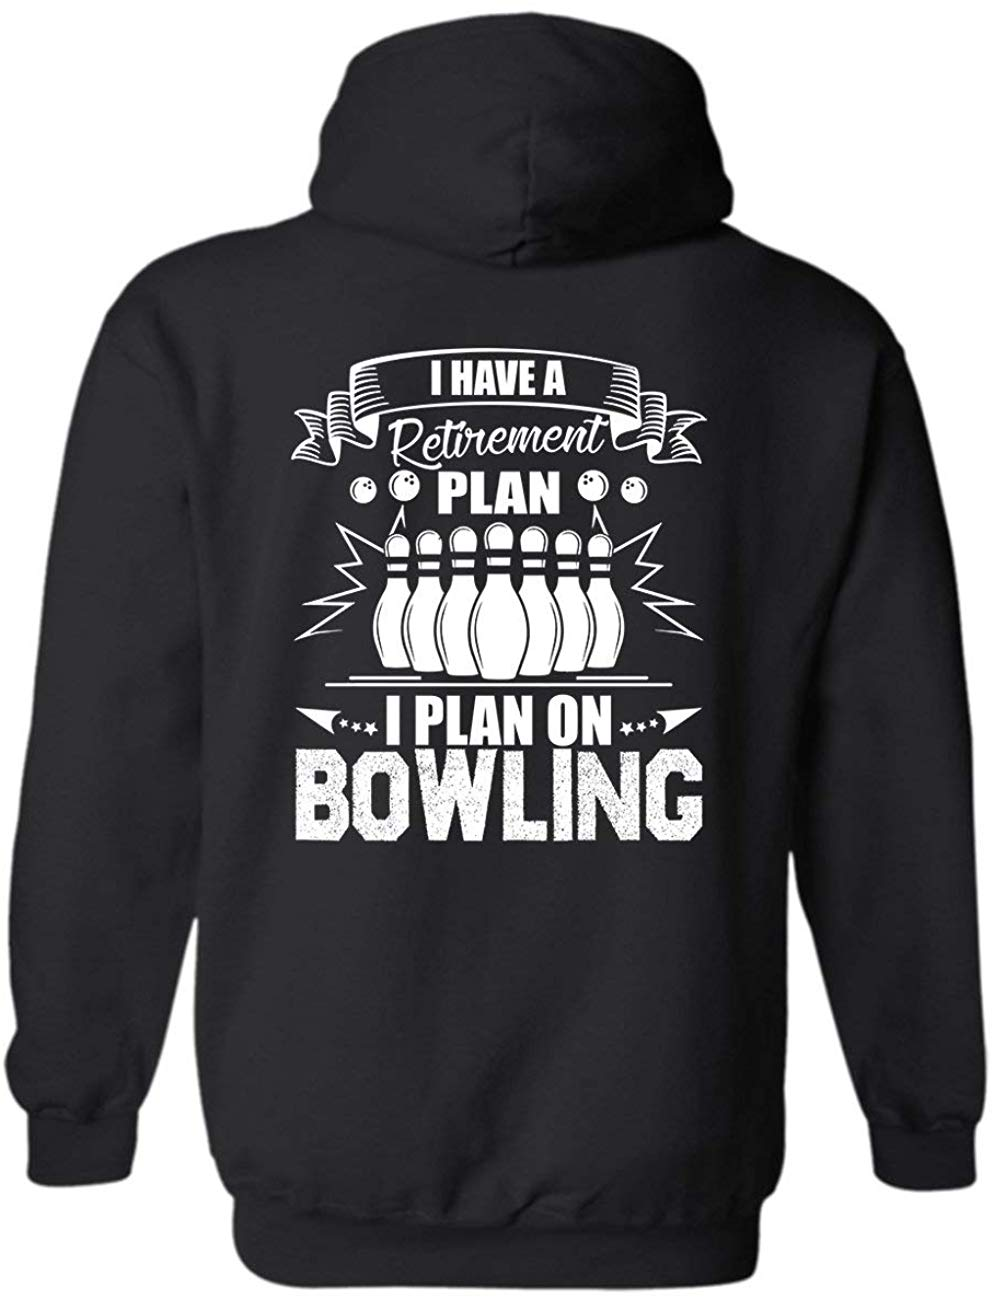 I Have A Retirement Plan I Plan On Bowling Long Hoodie, Adult Hoodieunisex men women hoodie image